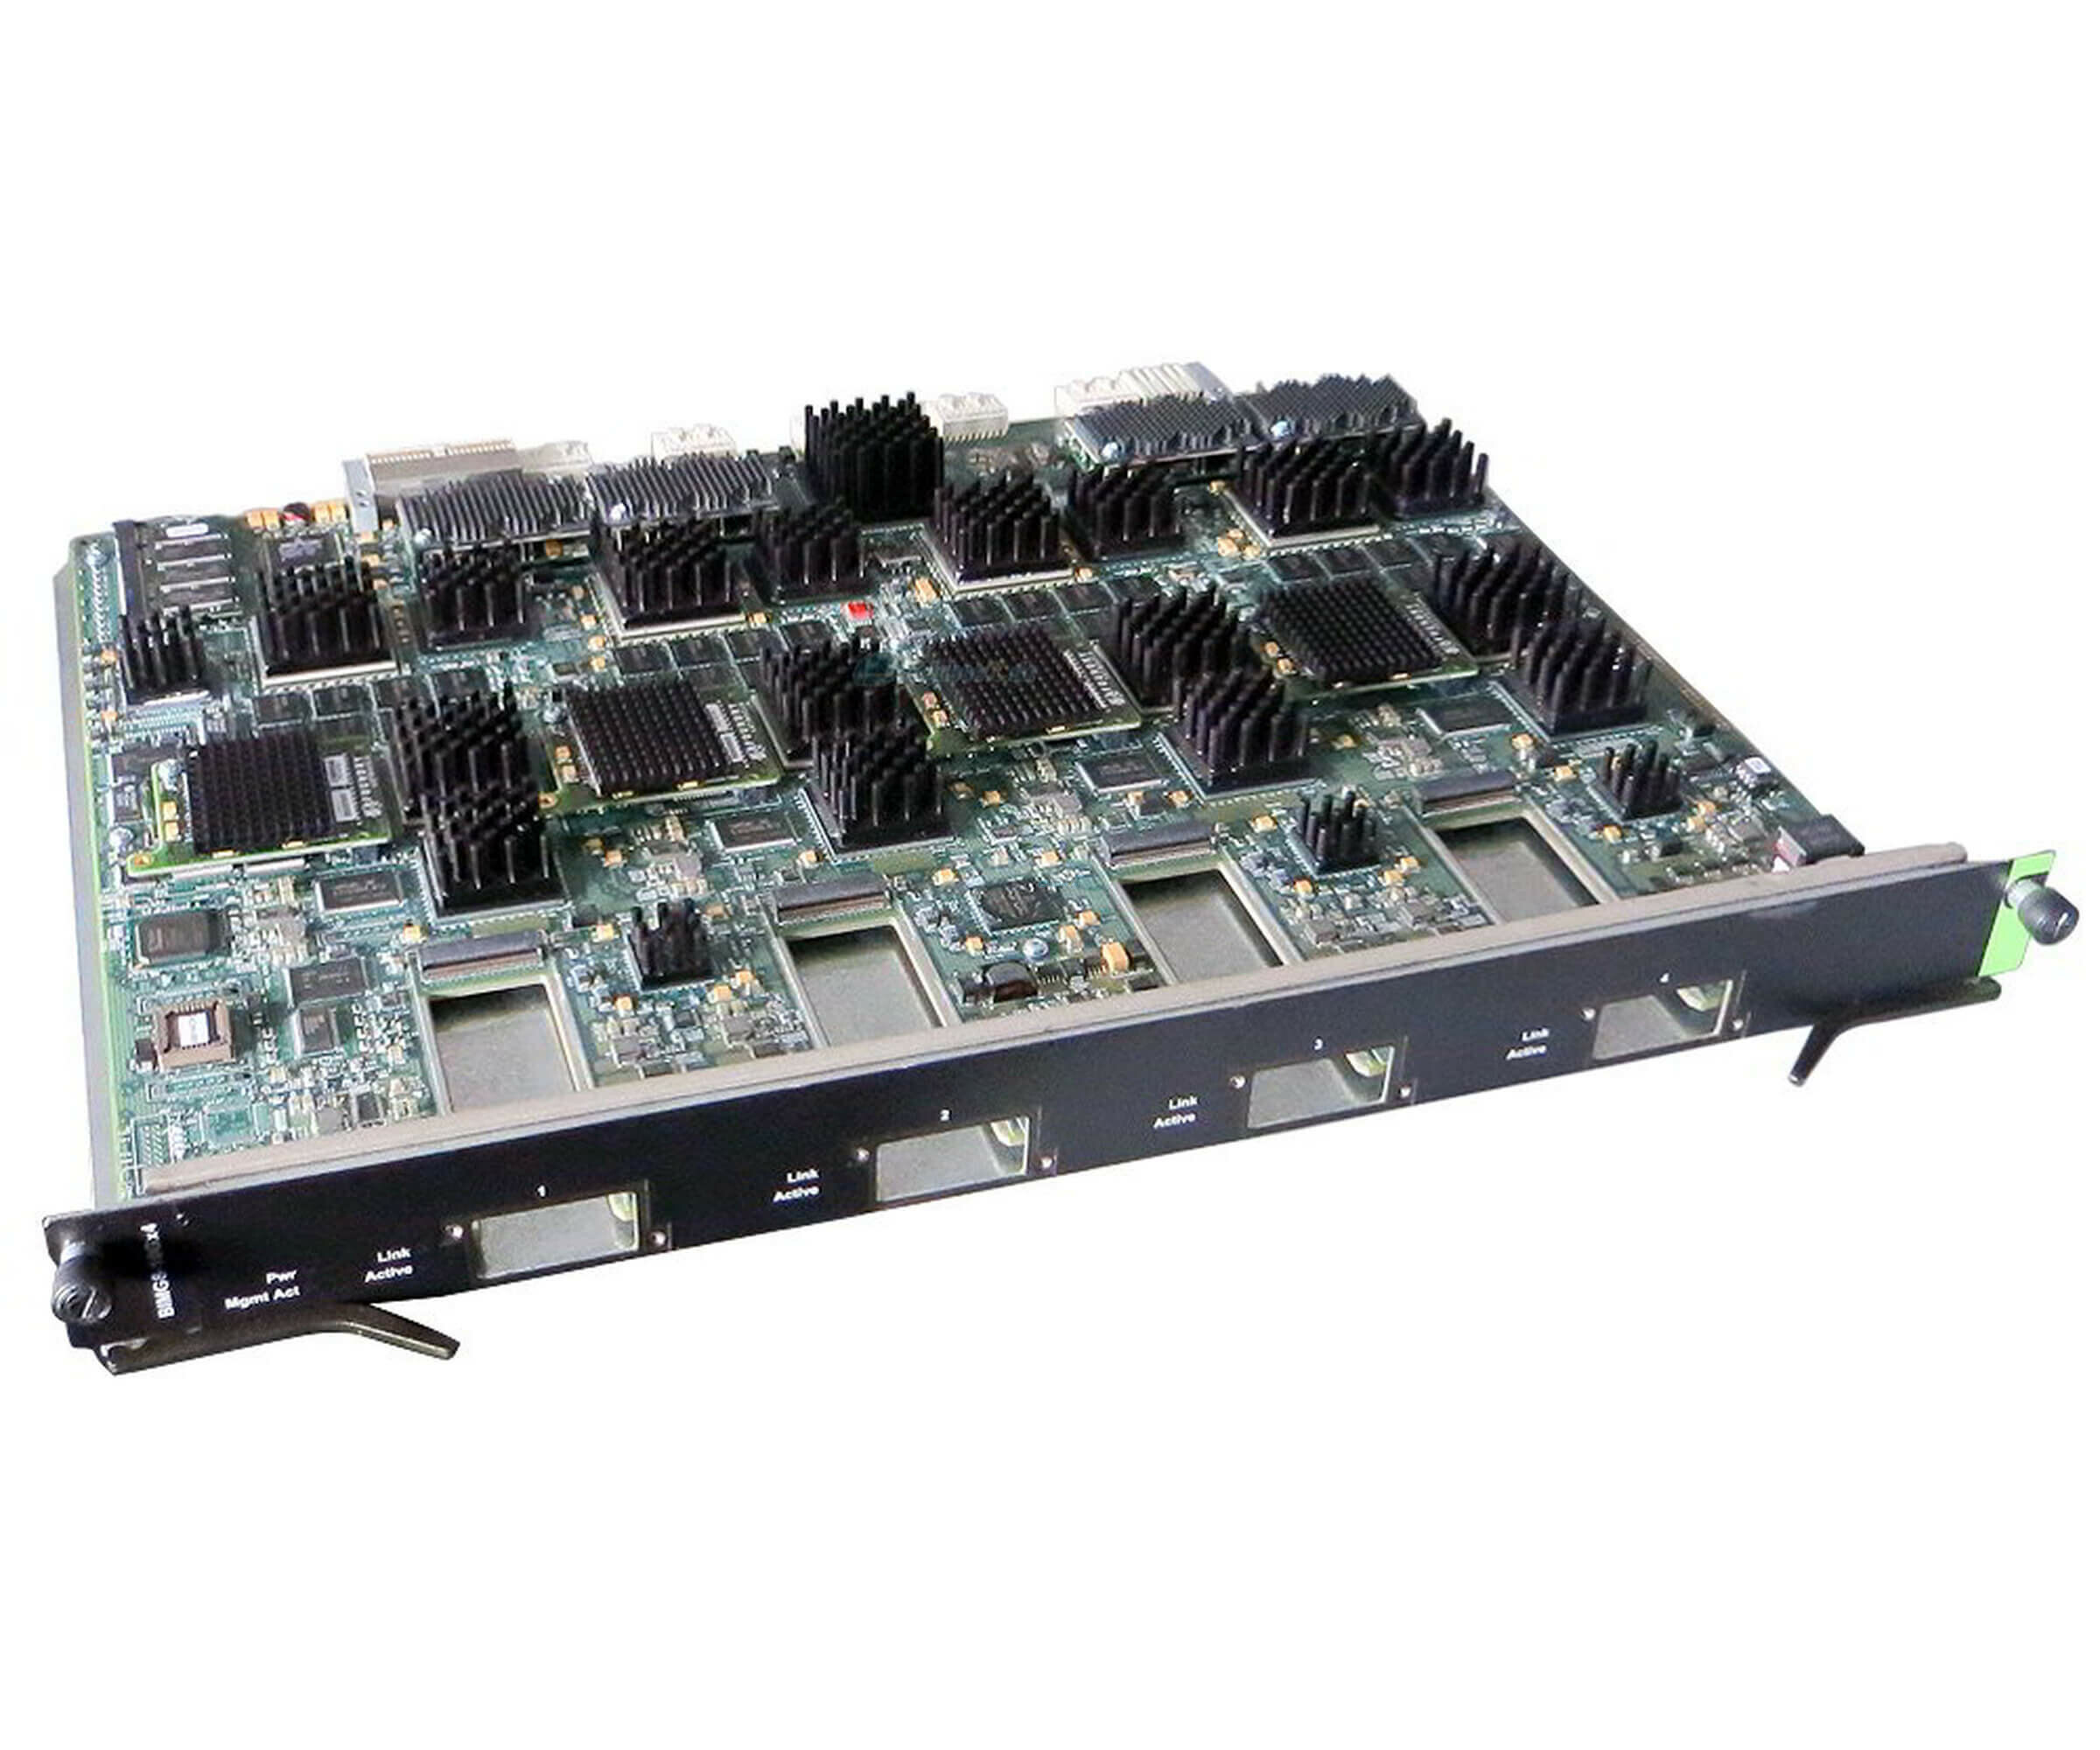 Brocade Foundry Networks BIMG8-10Gx4 - 4-Port 10GbE Switch Module - für BigIron MG8